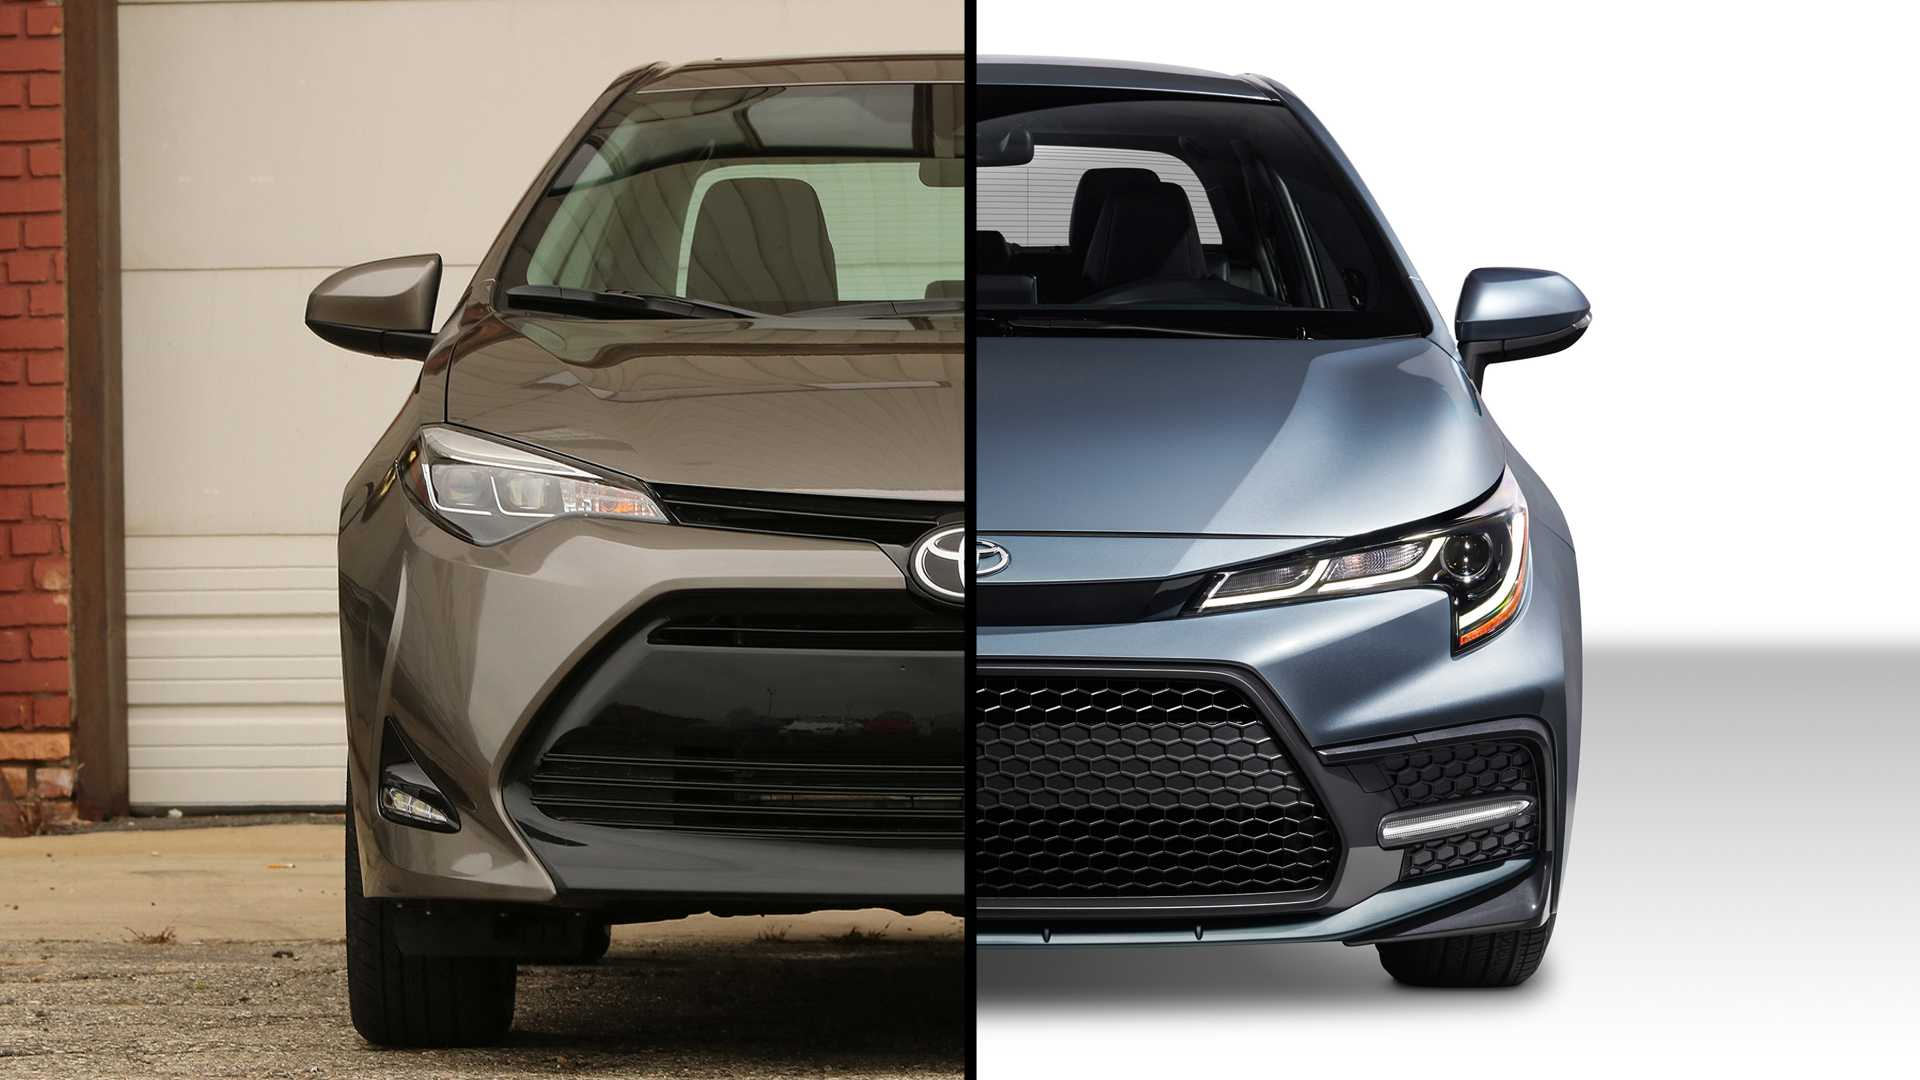 98 A Toyota New Model 2020 Price And Review